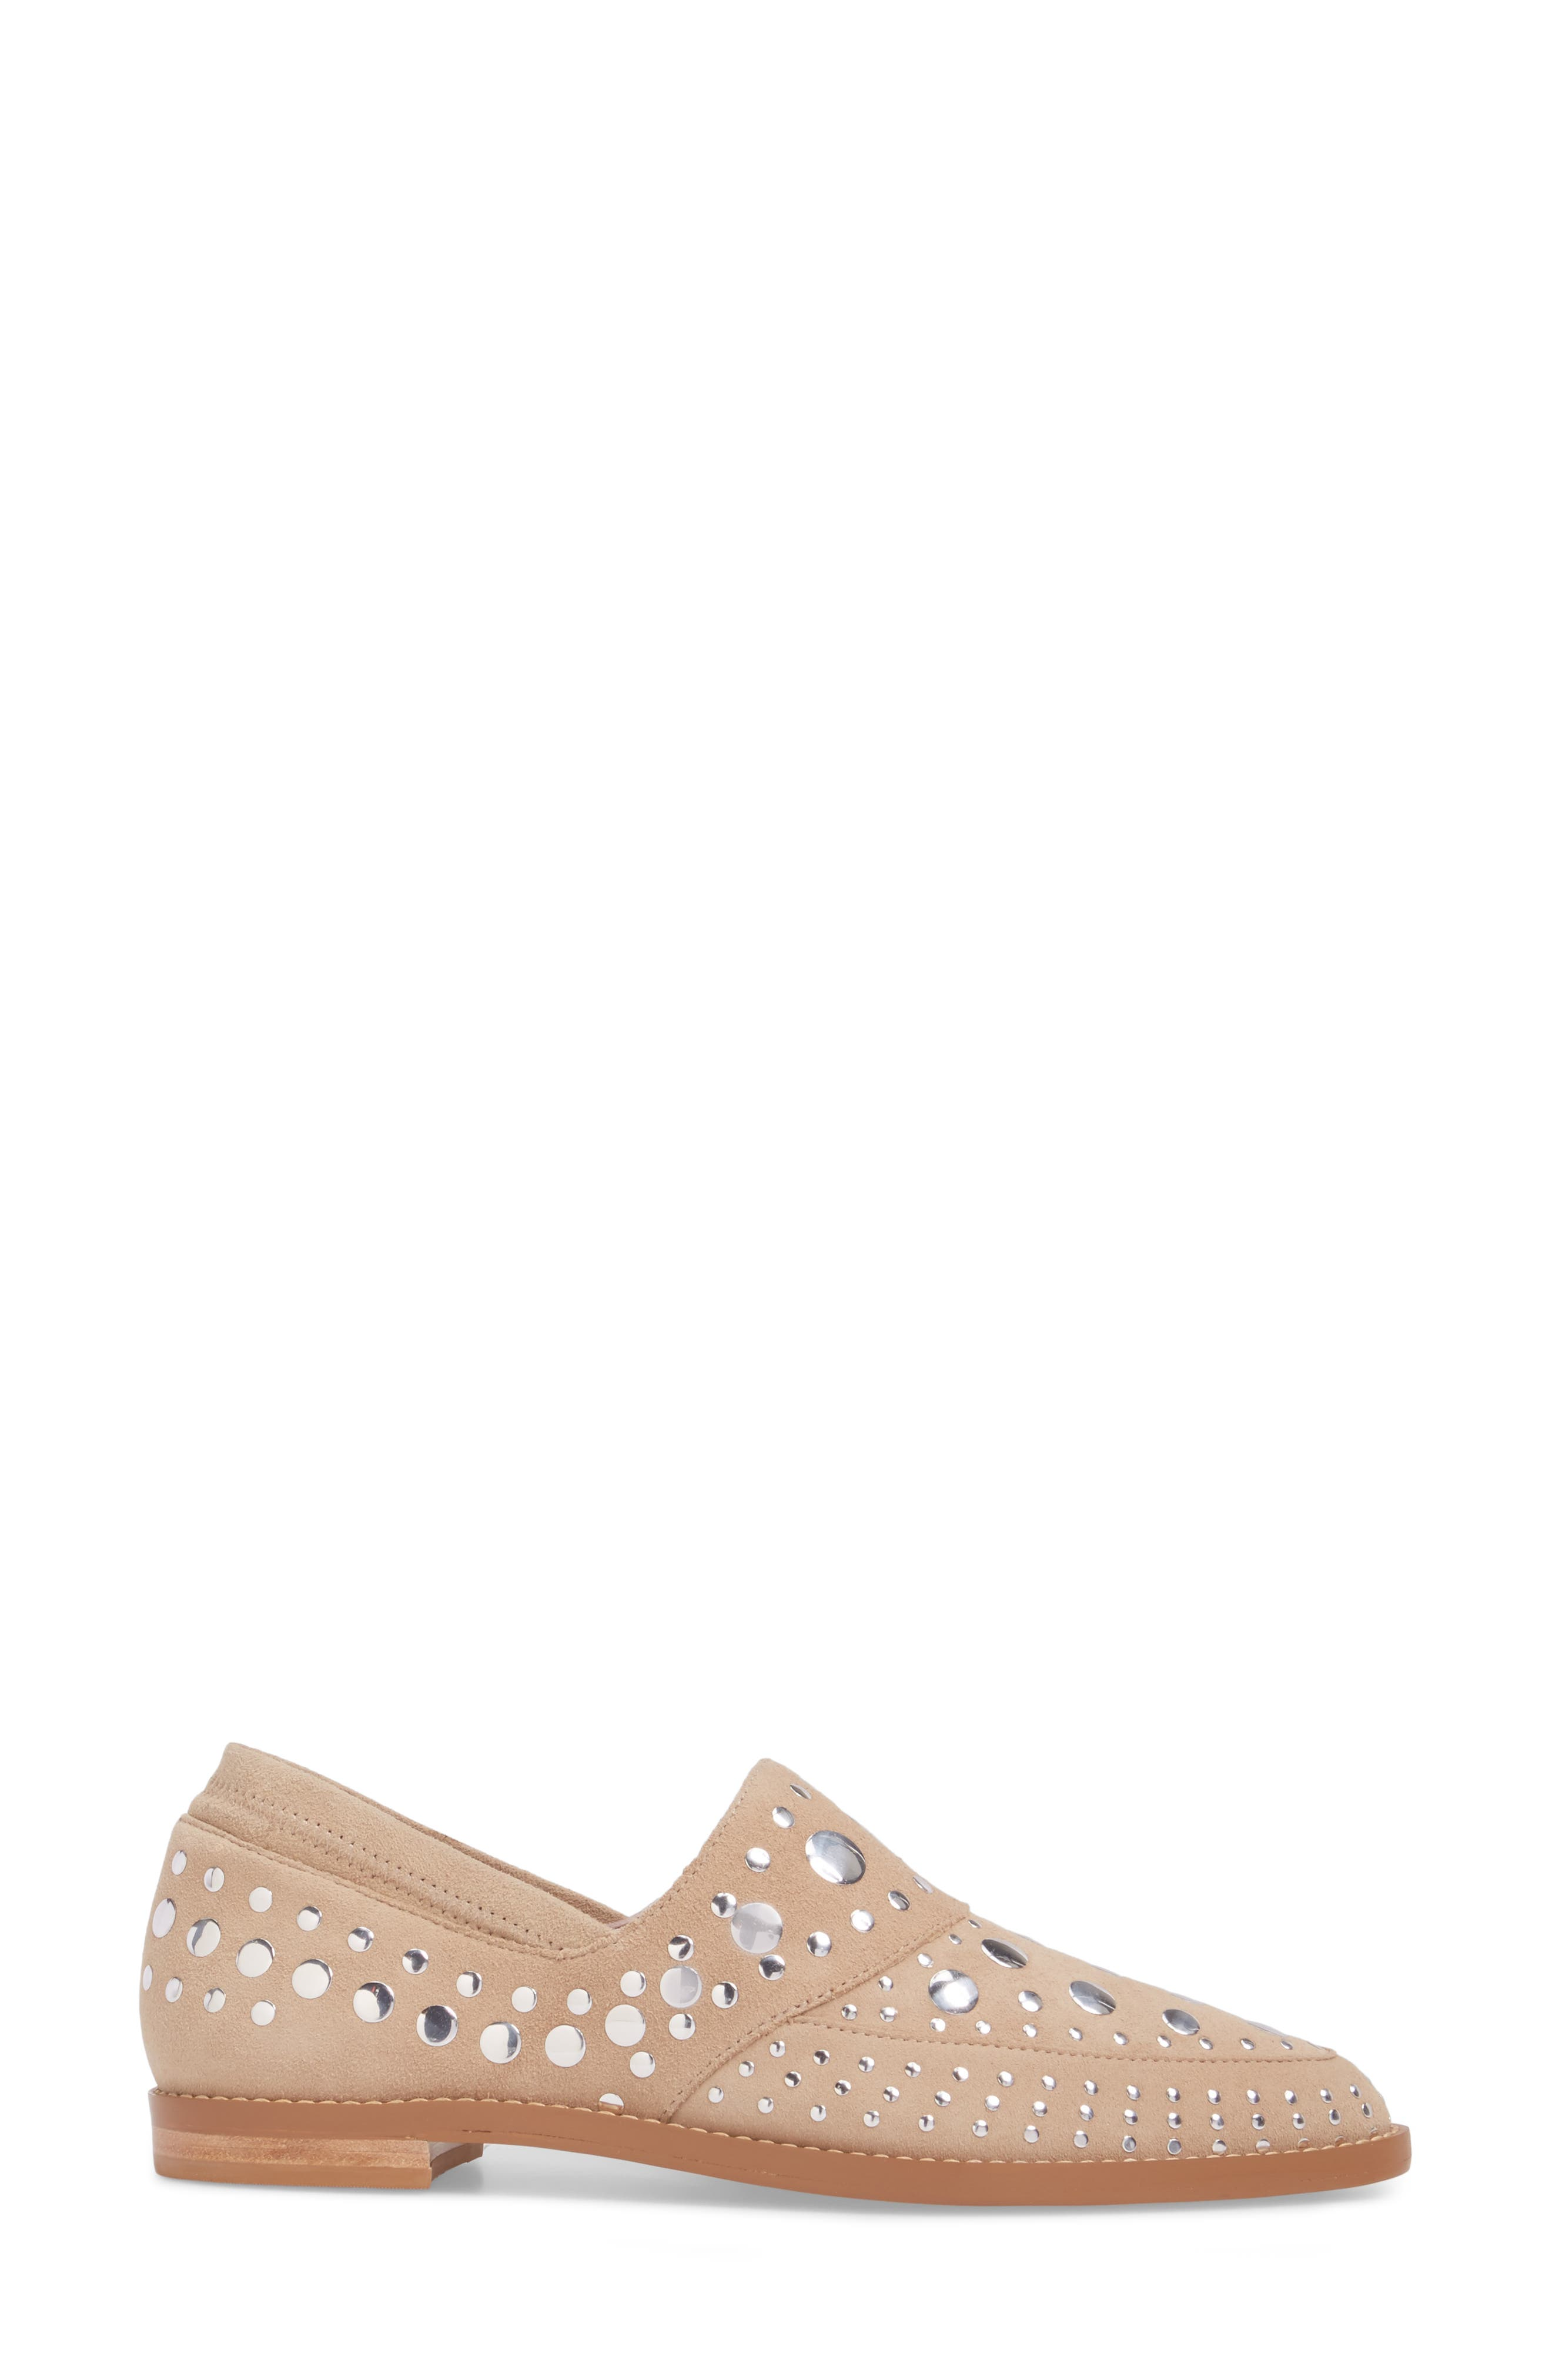 Ping Studded Loafer,                             Alternate thumbnail 9, color,